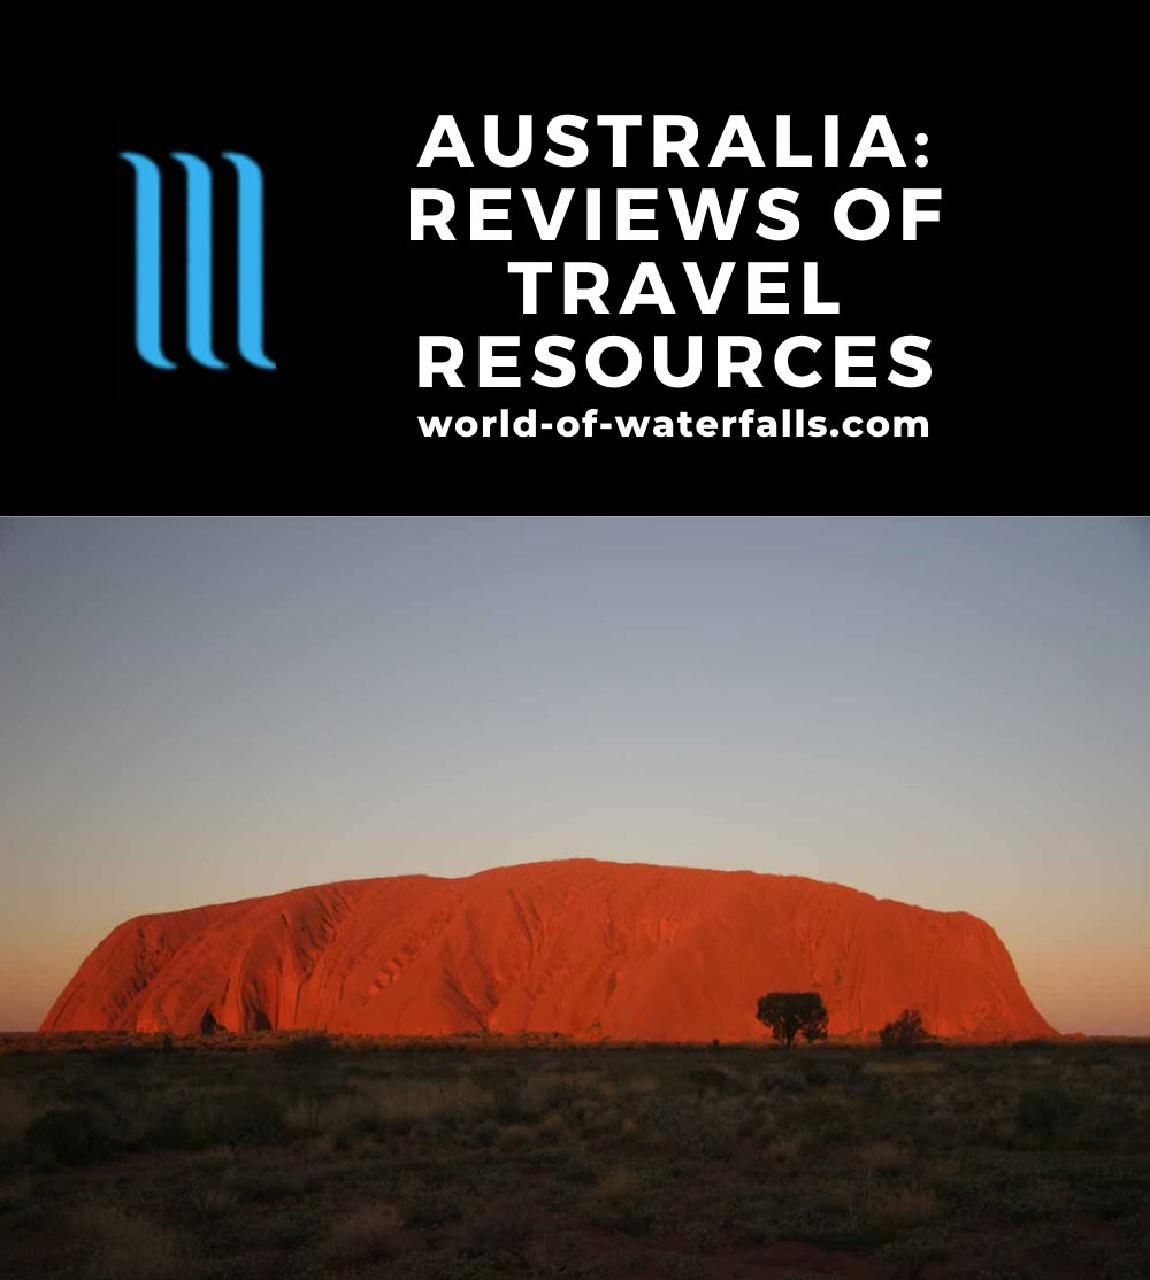 Australia: Reviews of Travel Resources